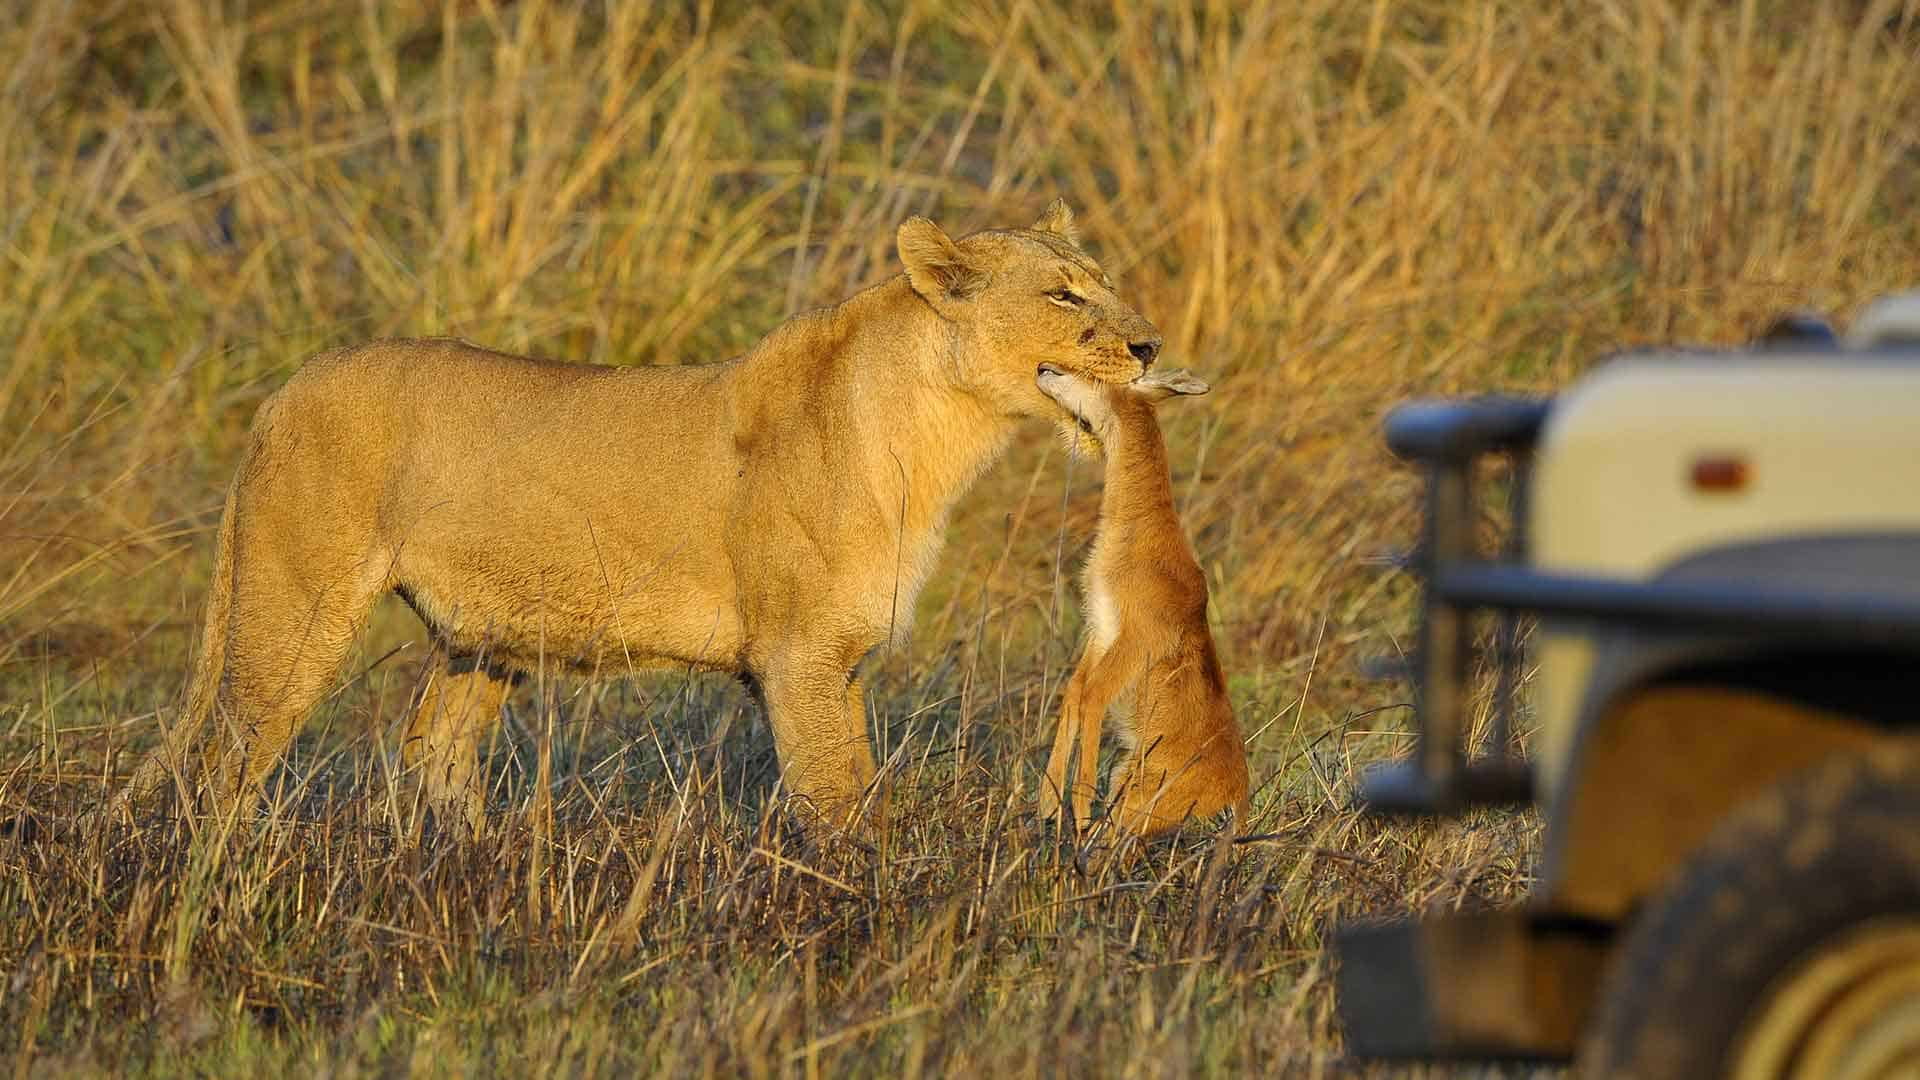 Lioness with fresh kill in her mouth walks past safari vehicle